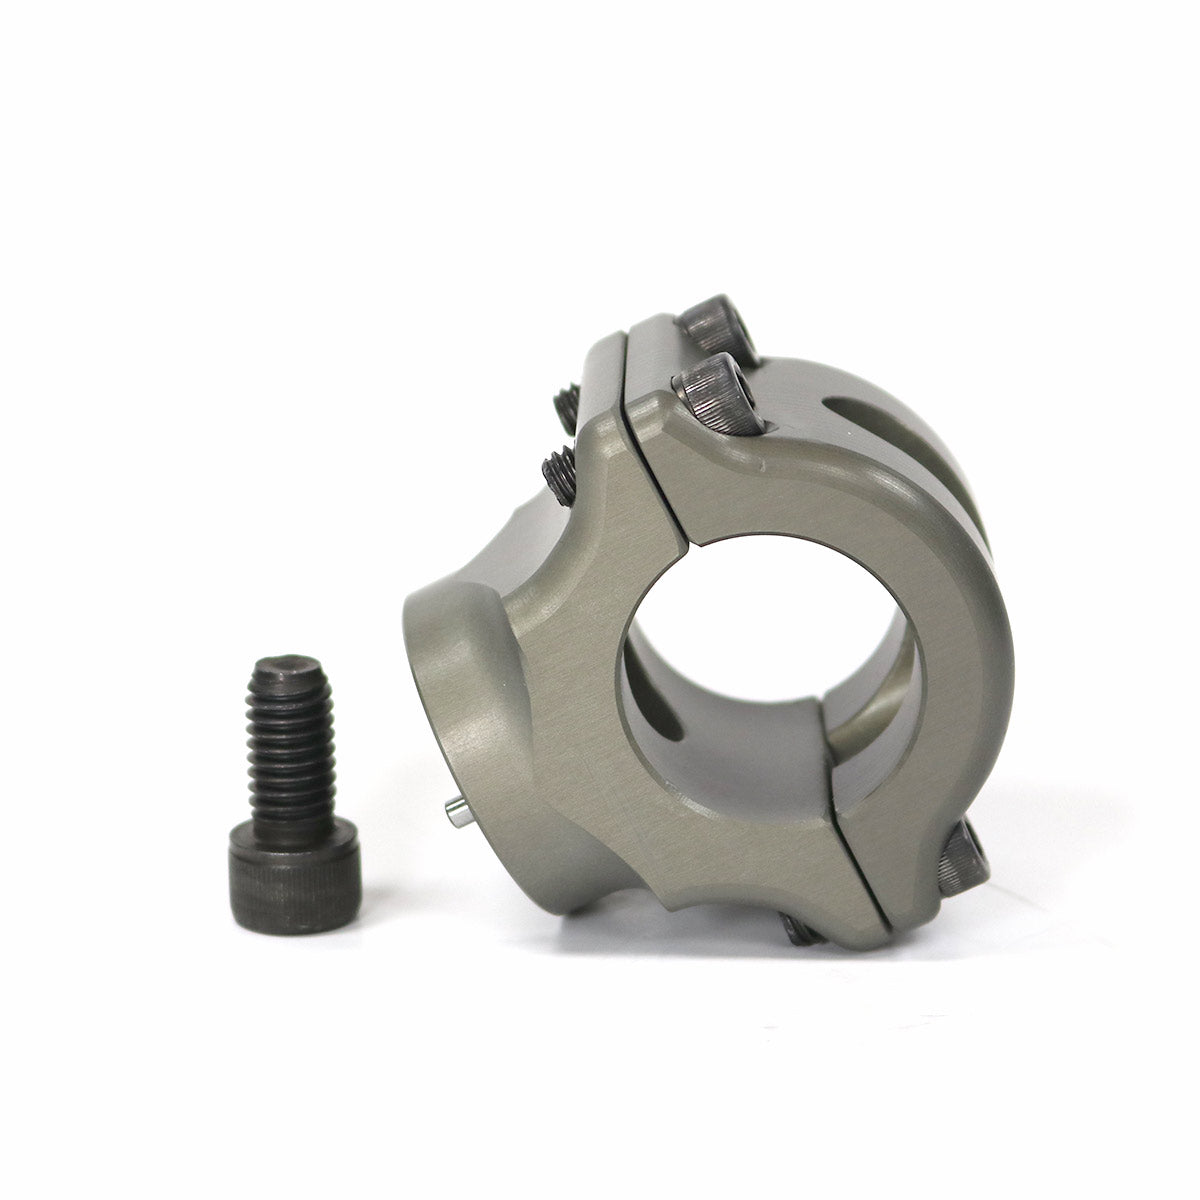 Oil System Pro Line Racing Peterson Fuel Filters Remote Filter Mount Bracket